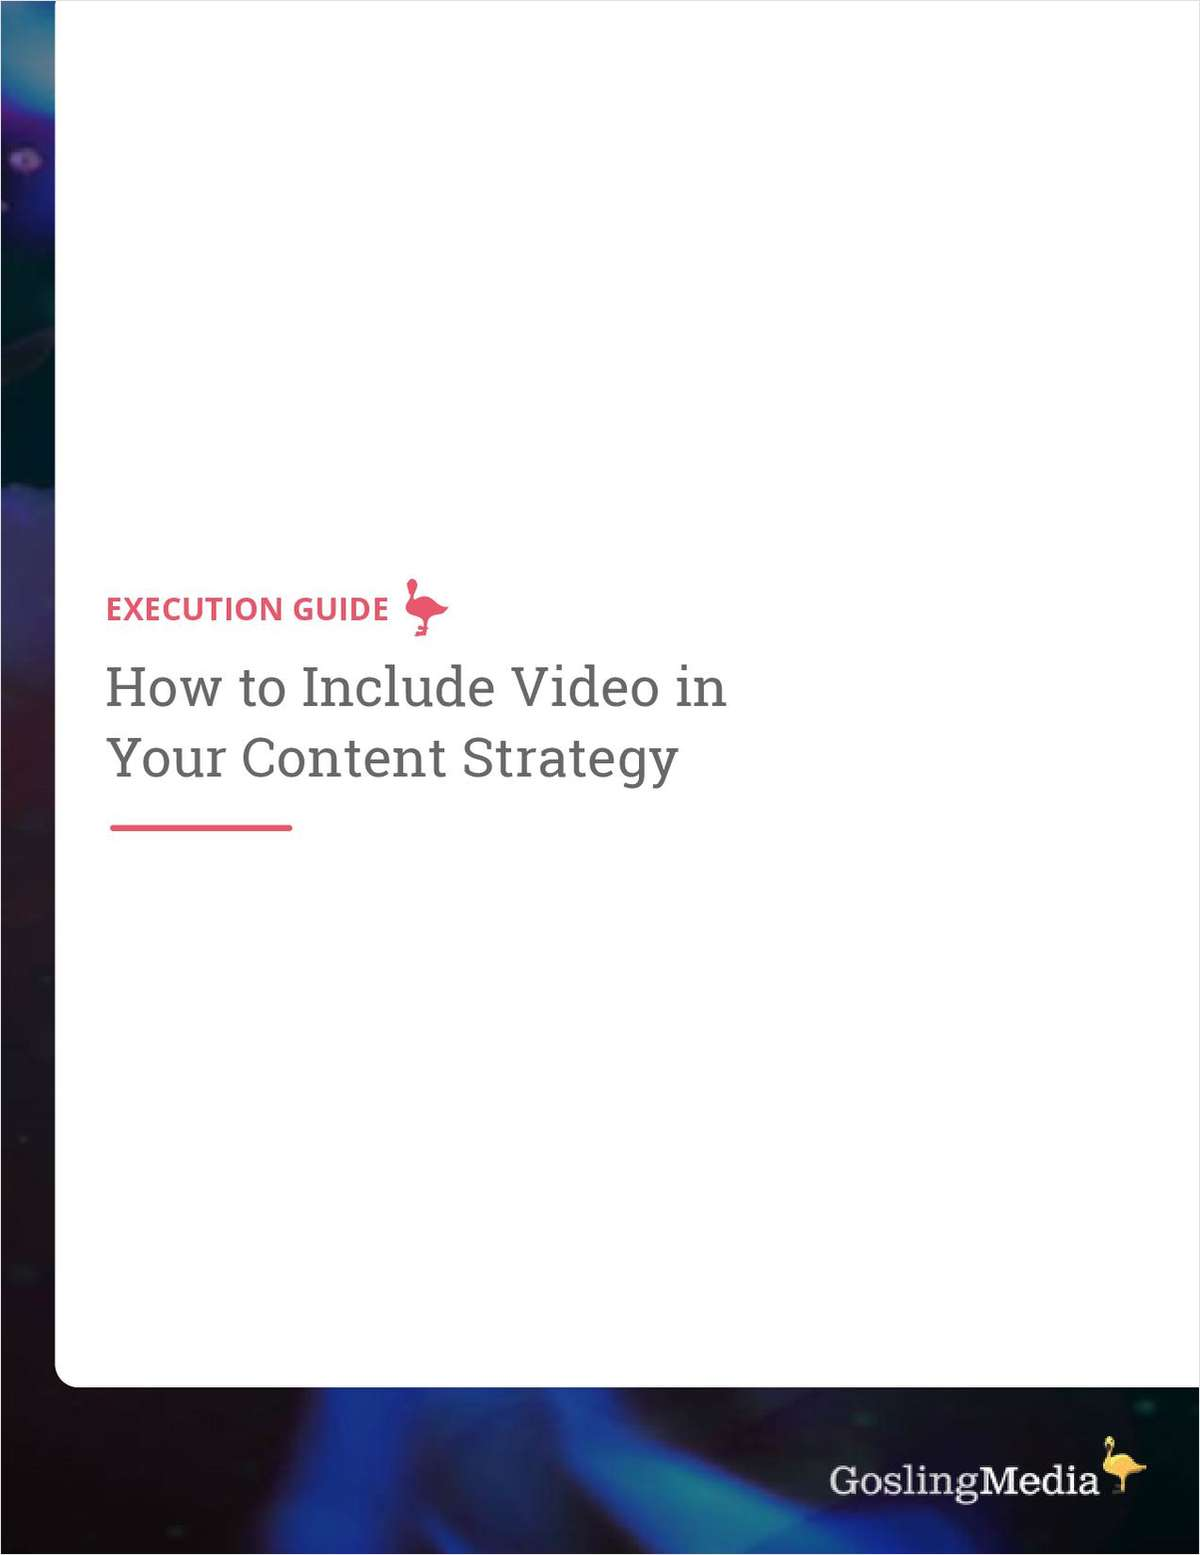 Execution Guide: Add Video to your Content Strategy